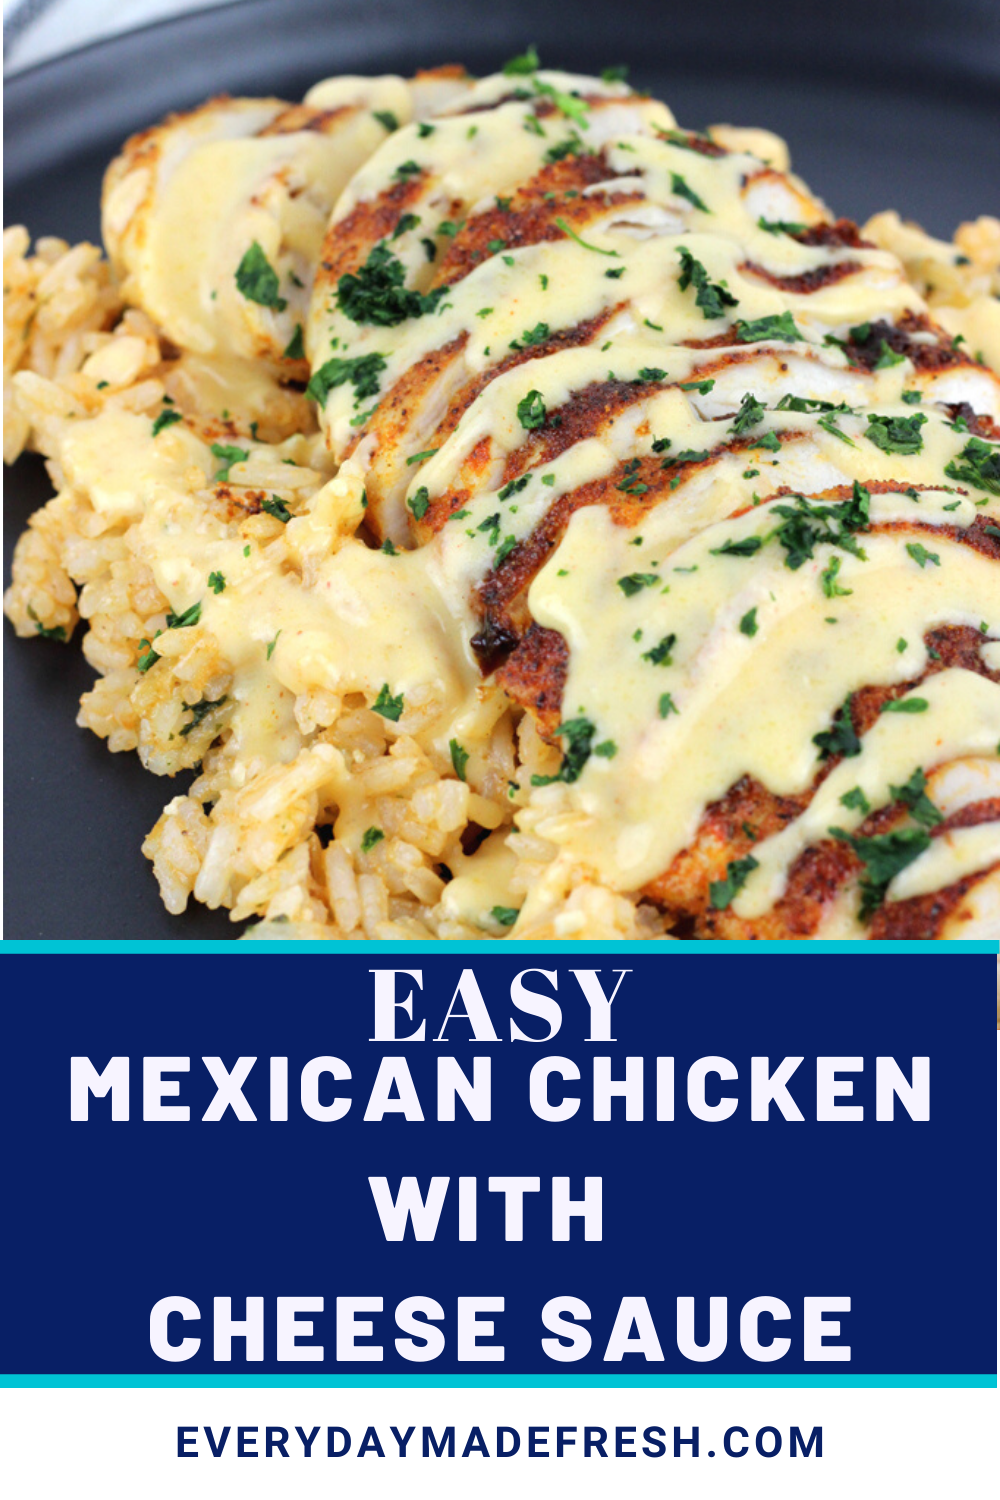 Mexican spiced chicken topped with a creamy cheese sauce makes this, Mexican Chicken with Cheese Sauce delicious any night of the week. Pair it with the Perfect Mexican Rice for a complete meal that your family will be begging for more. | EverydayMadeFresh.com